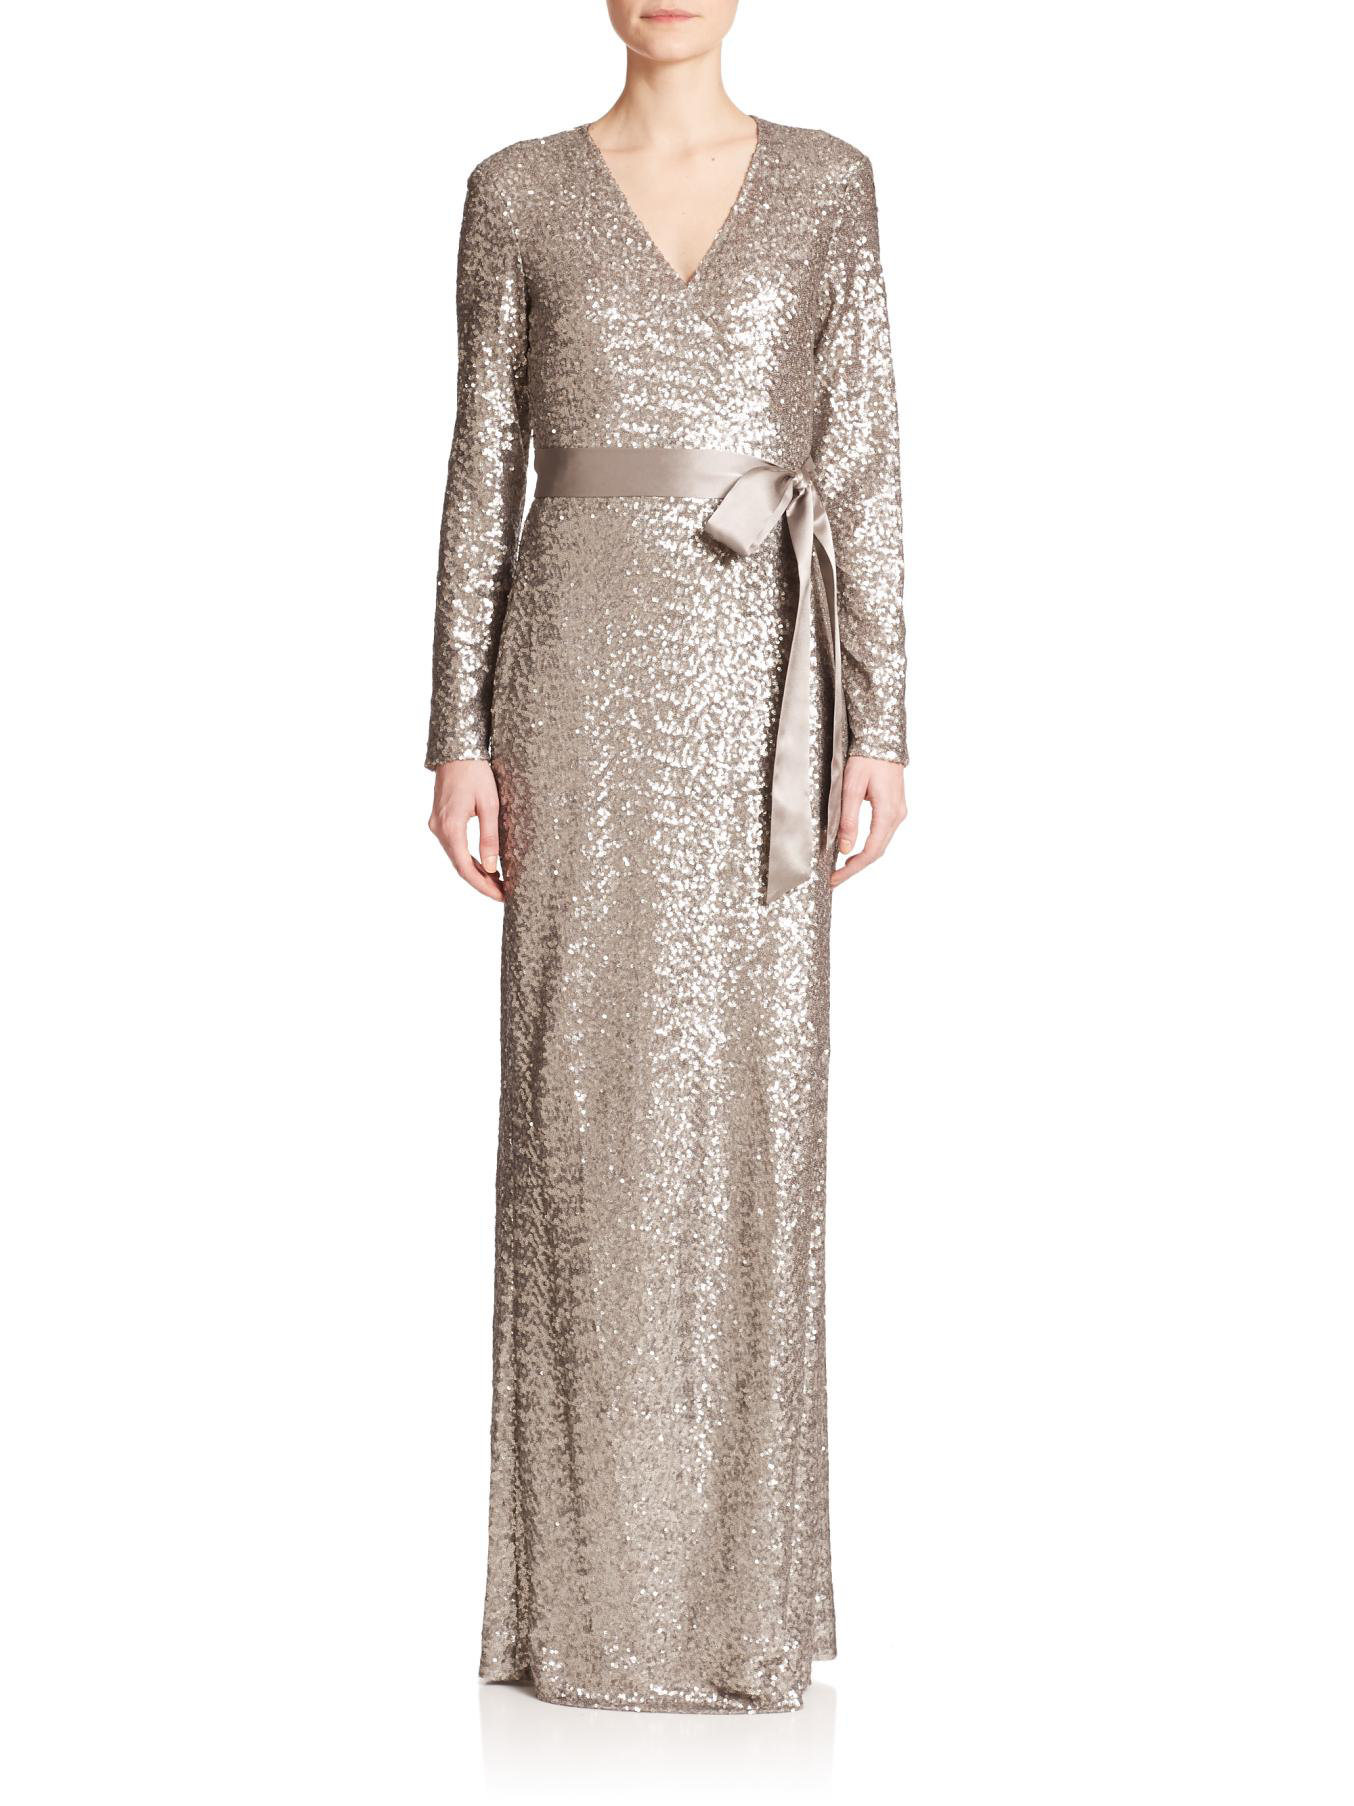 Lyst - Diane Von Furstenberg Ariel Sequined Silk Wrap Gown in Metallic